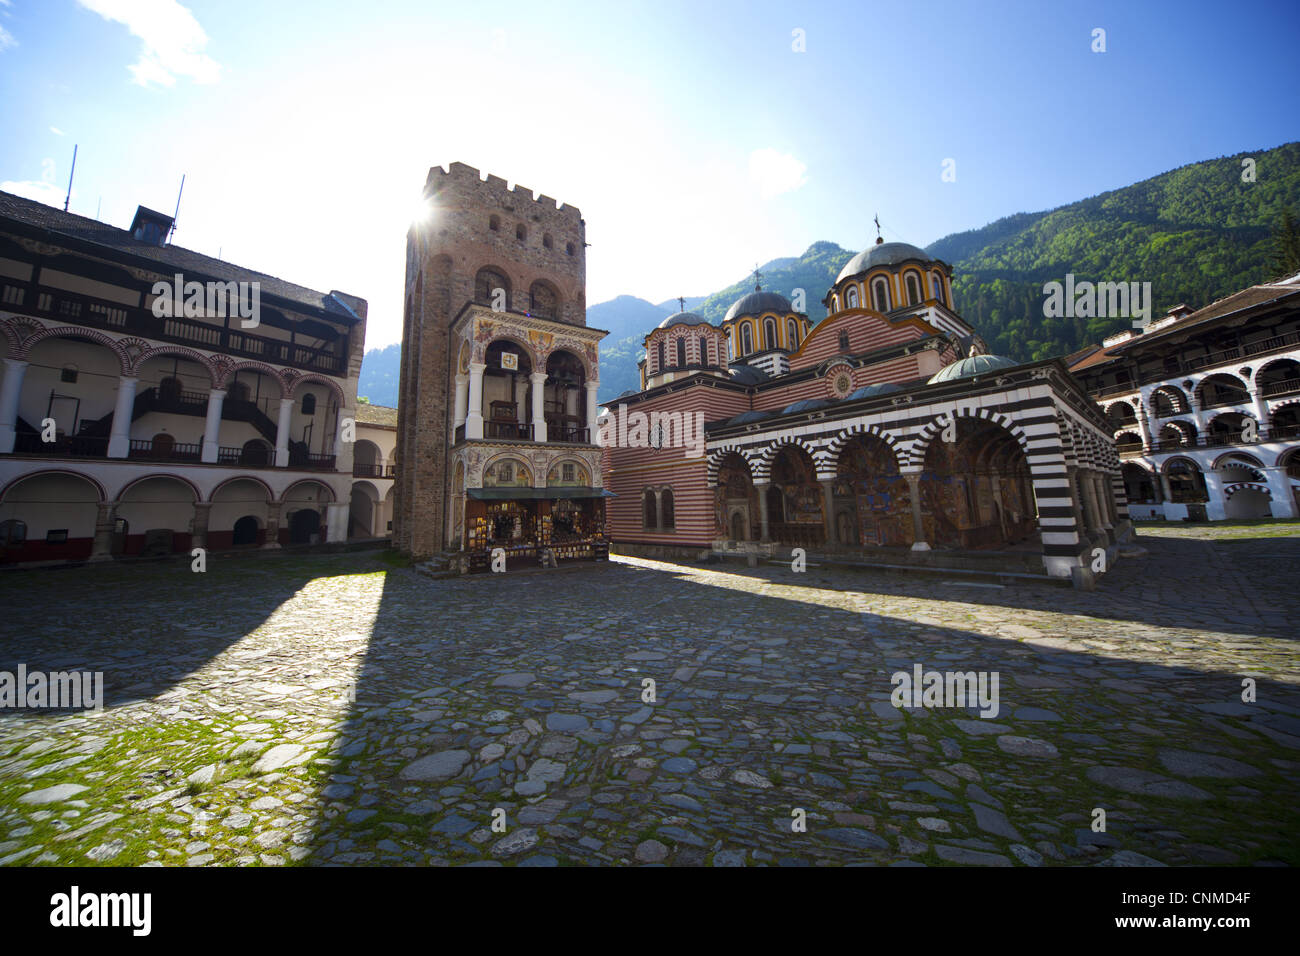 Courtyard, Church of the Nativity, Rila Mountains, Bulgaria, Europe - Stock Image